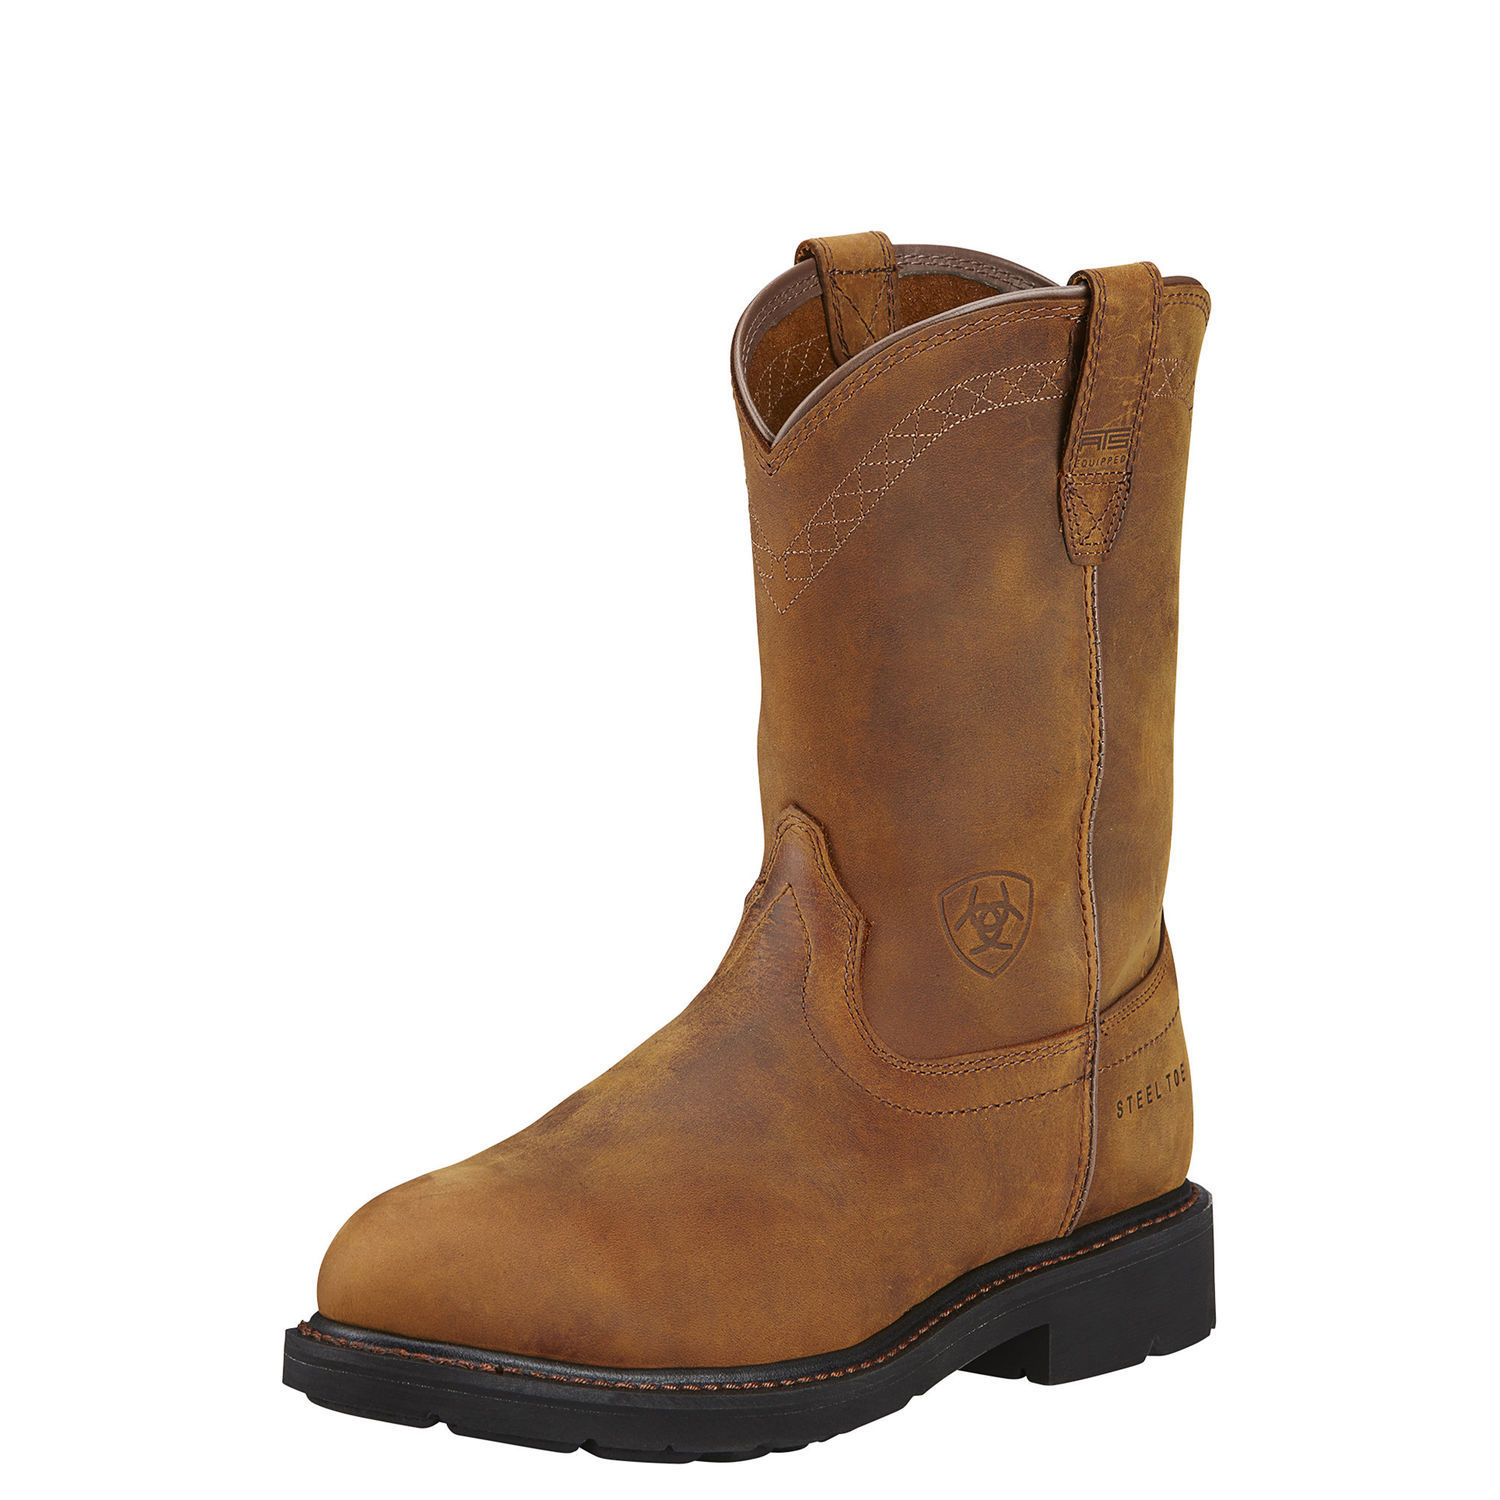 Ariat Men's Sierra Work Boot Steel Toe - 10002449